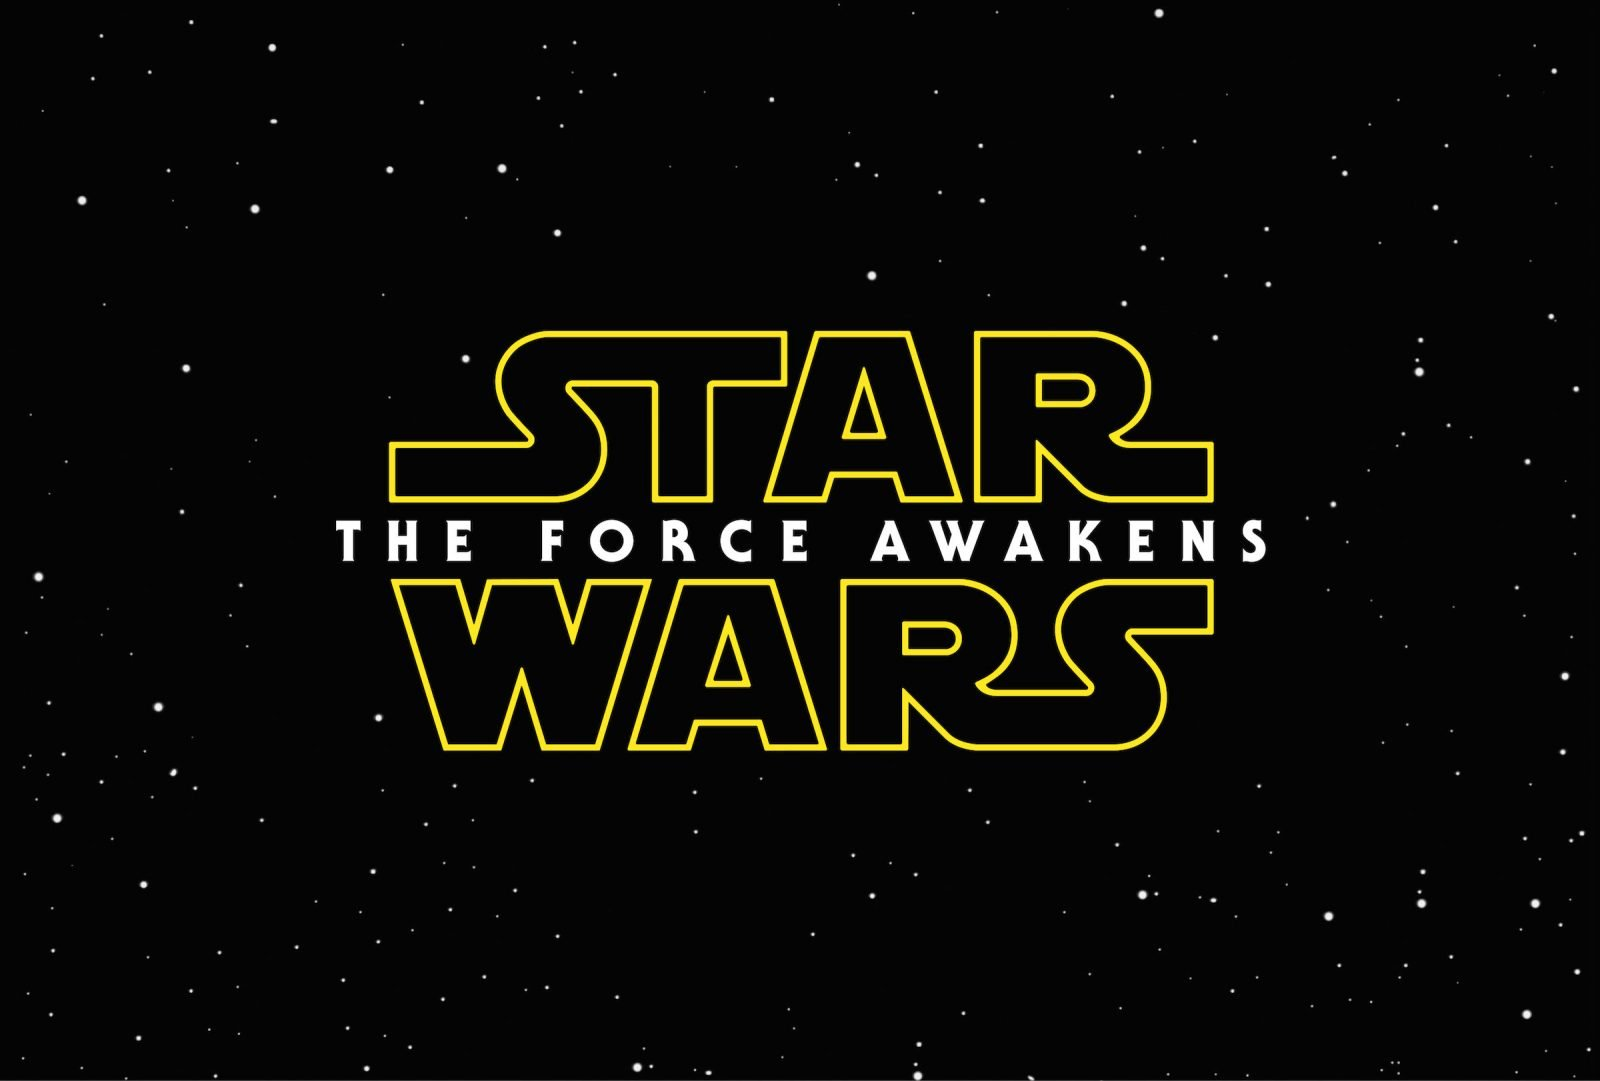 Star Wars VII The Force Awakens 33 - Opening